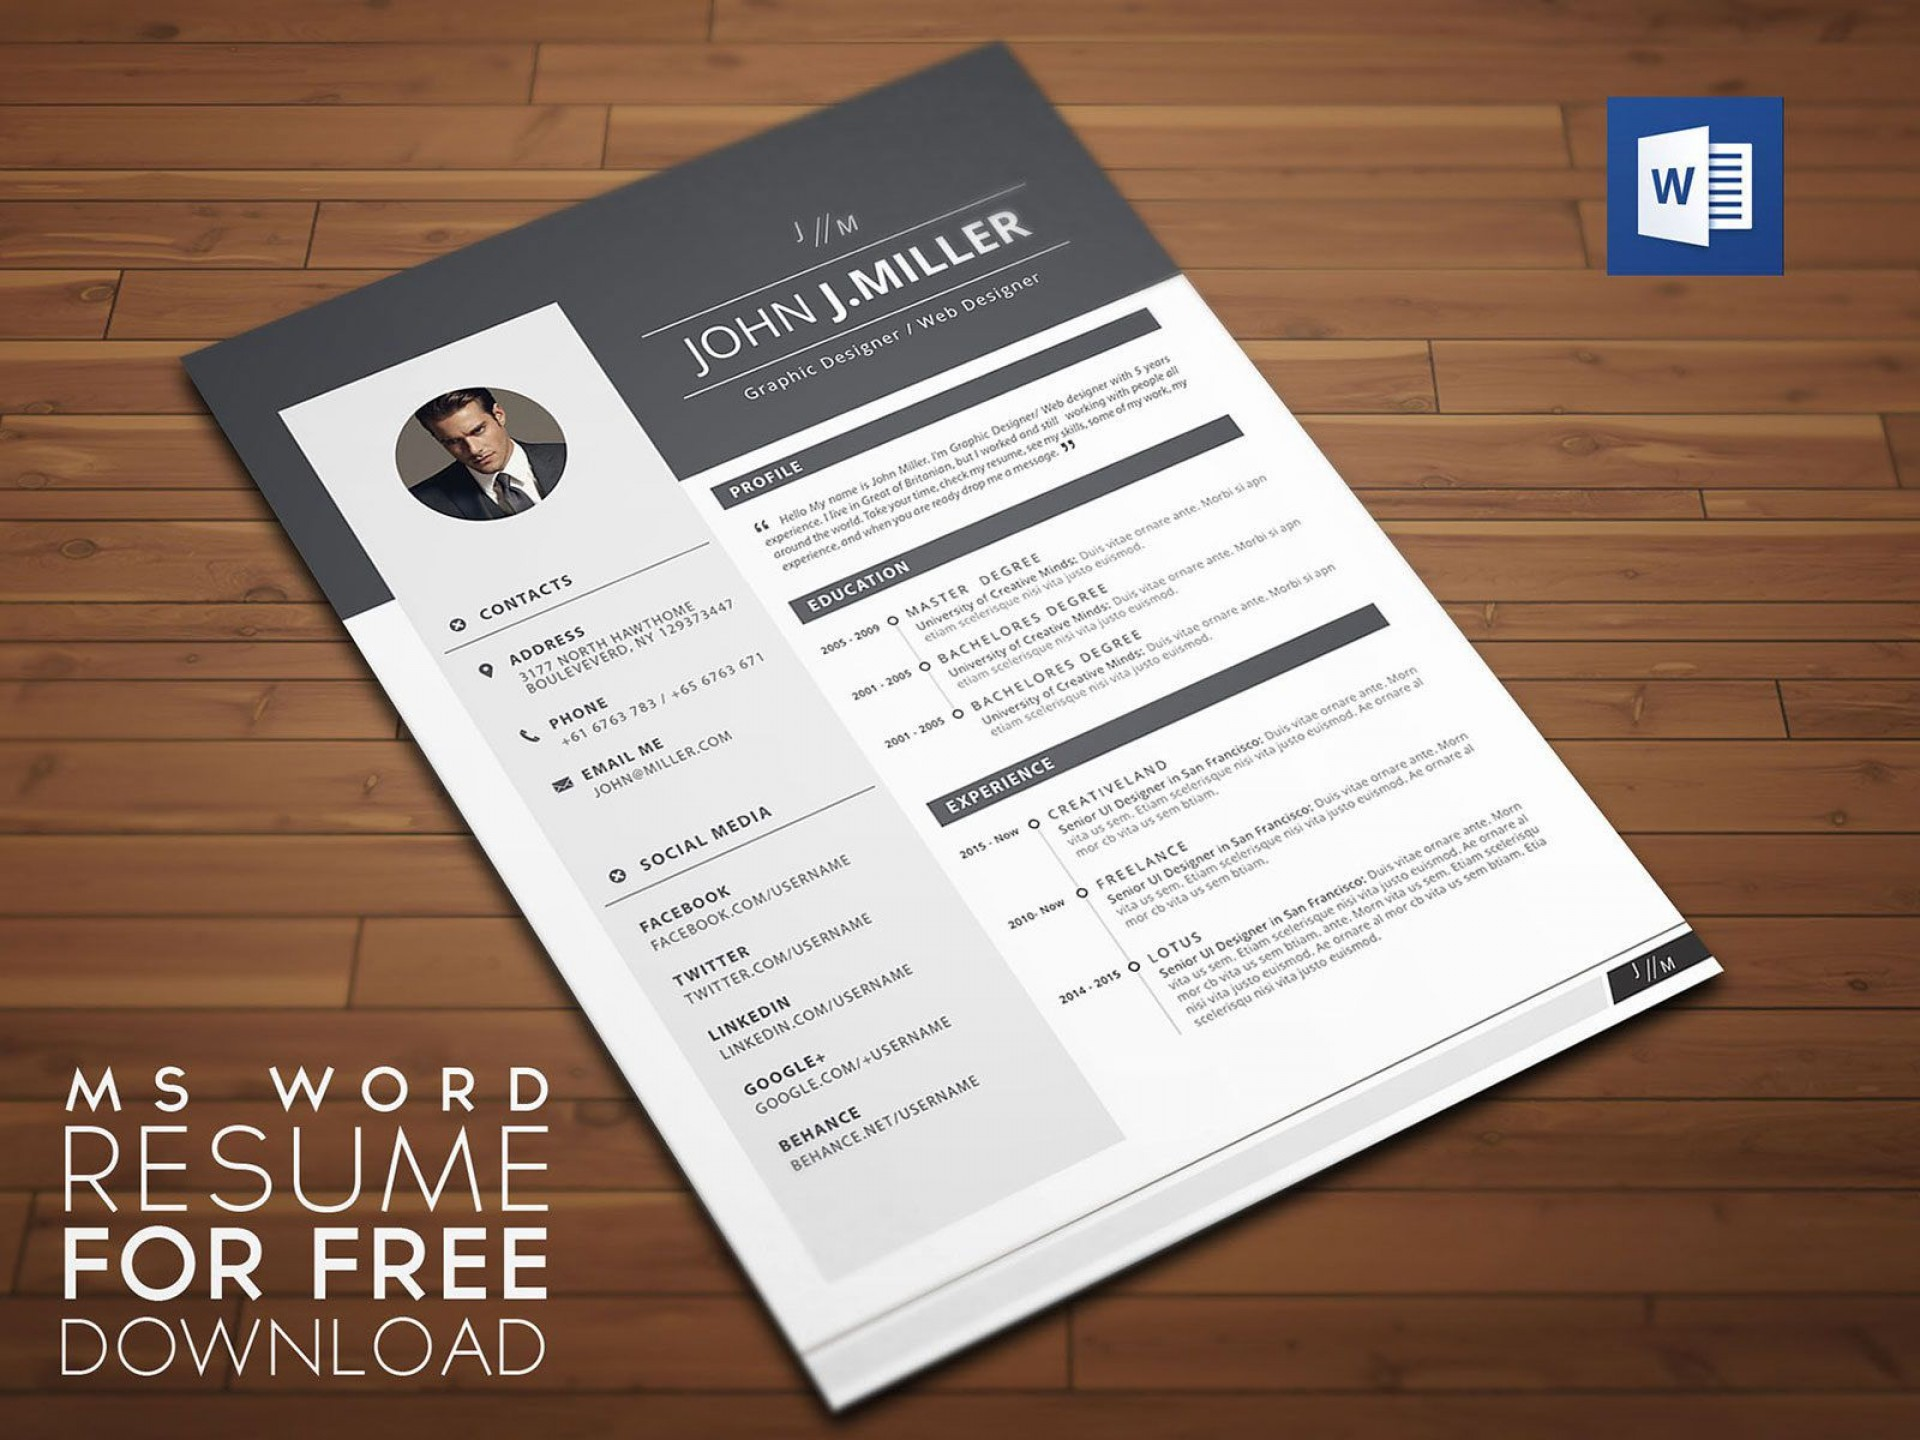 006 Imposing Professional Resume Template 2018 Free Download Idea 1920